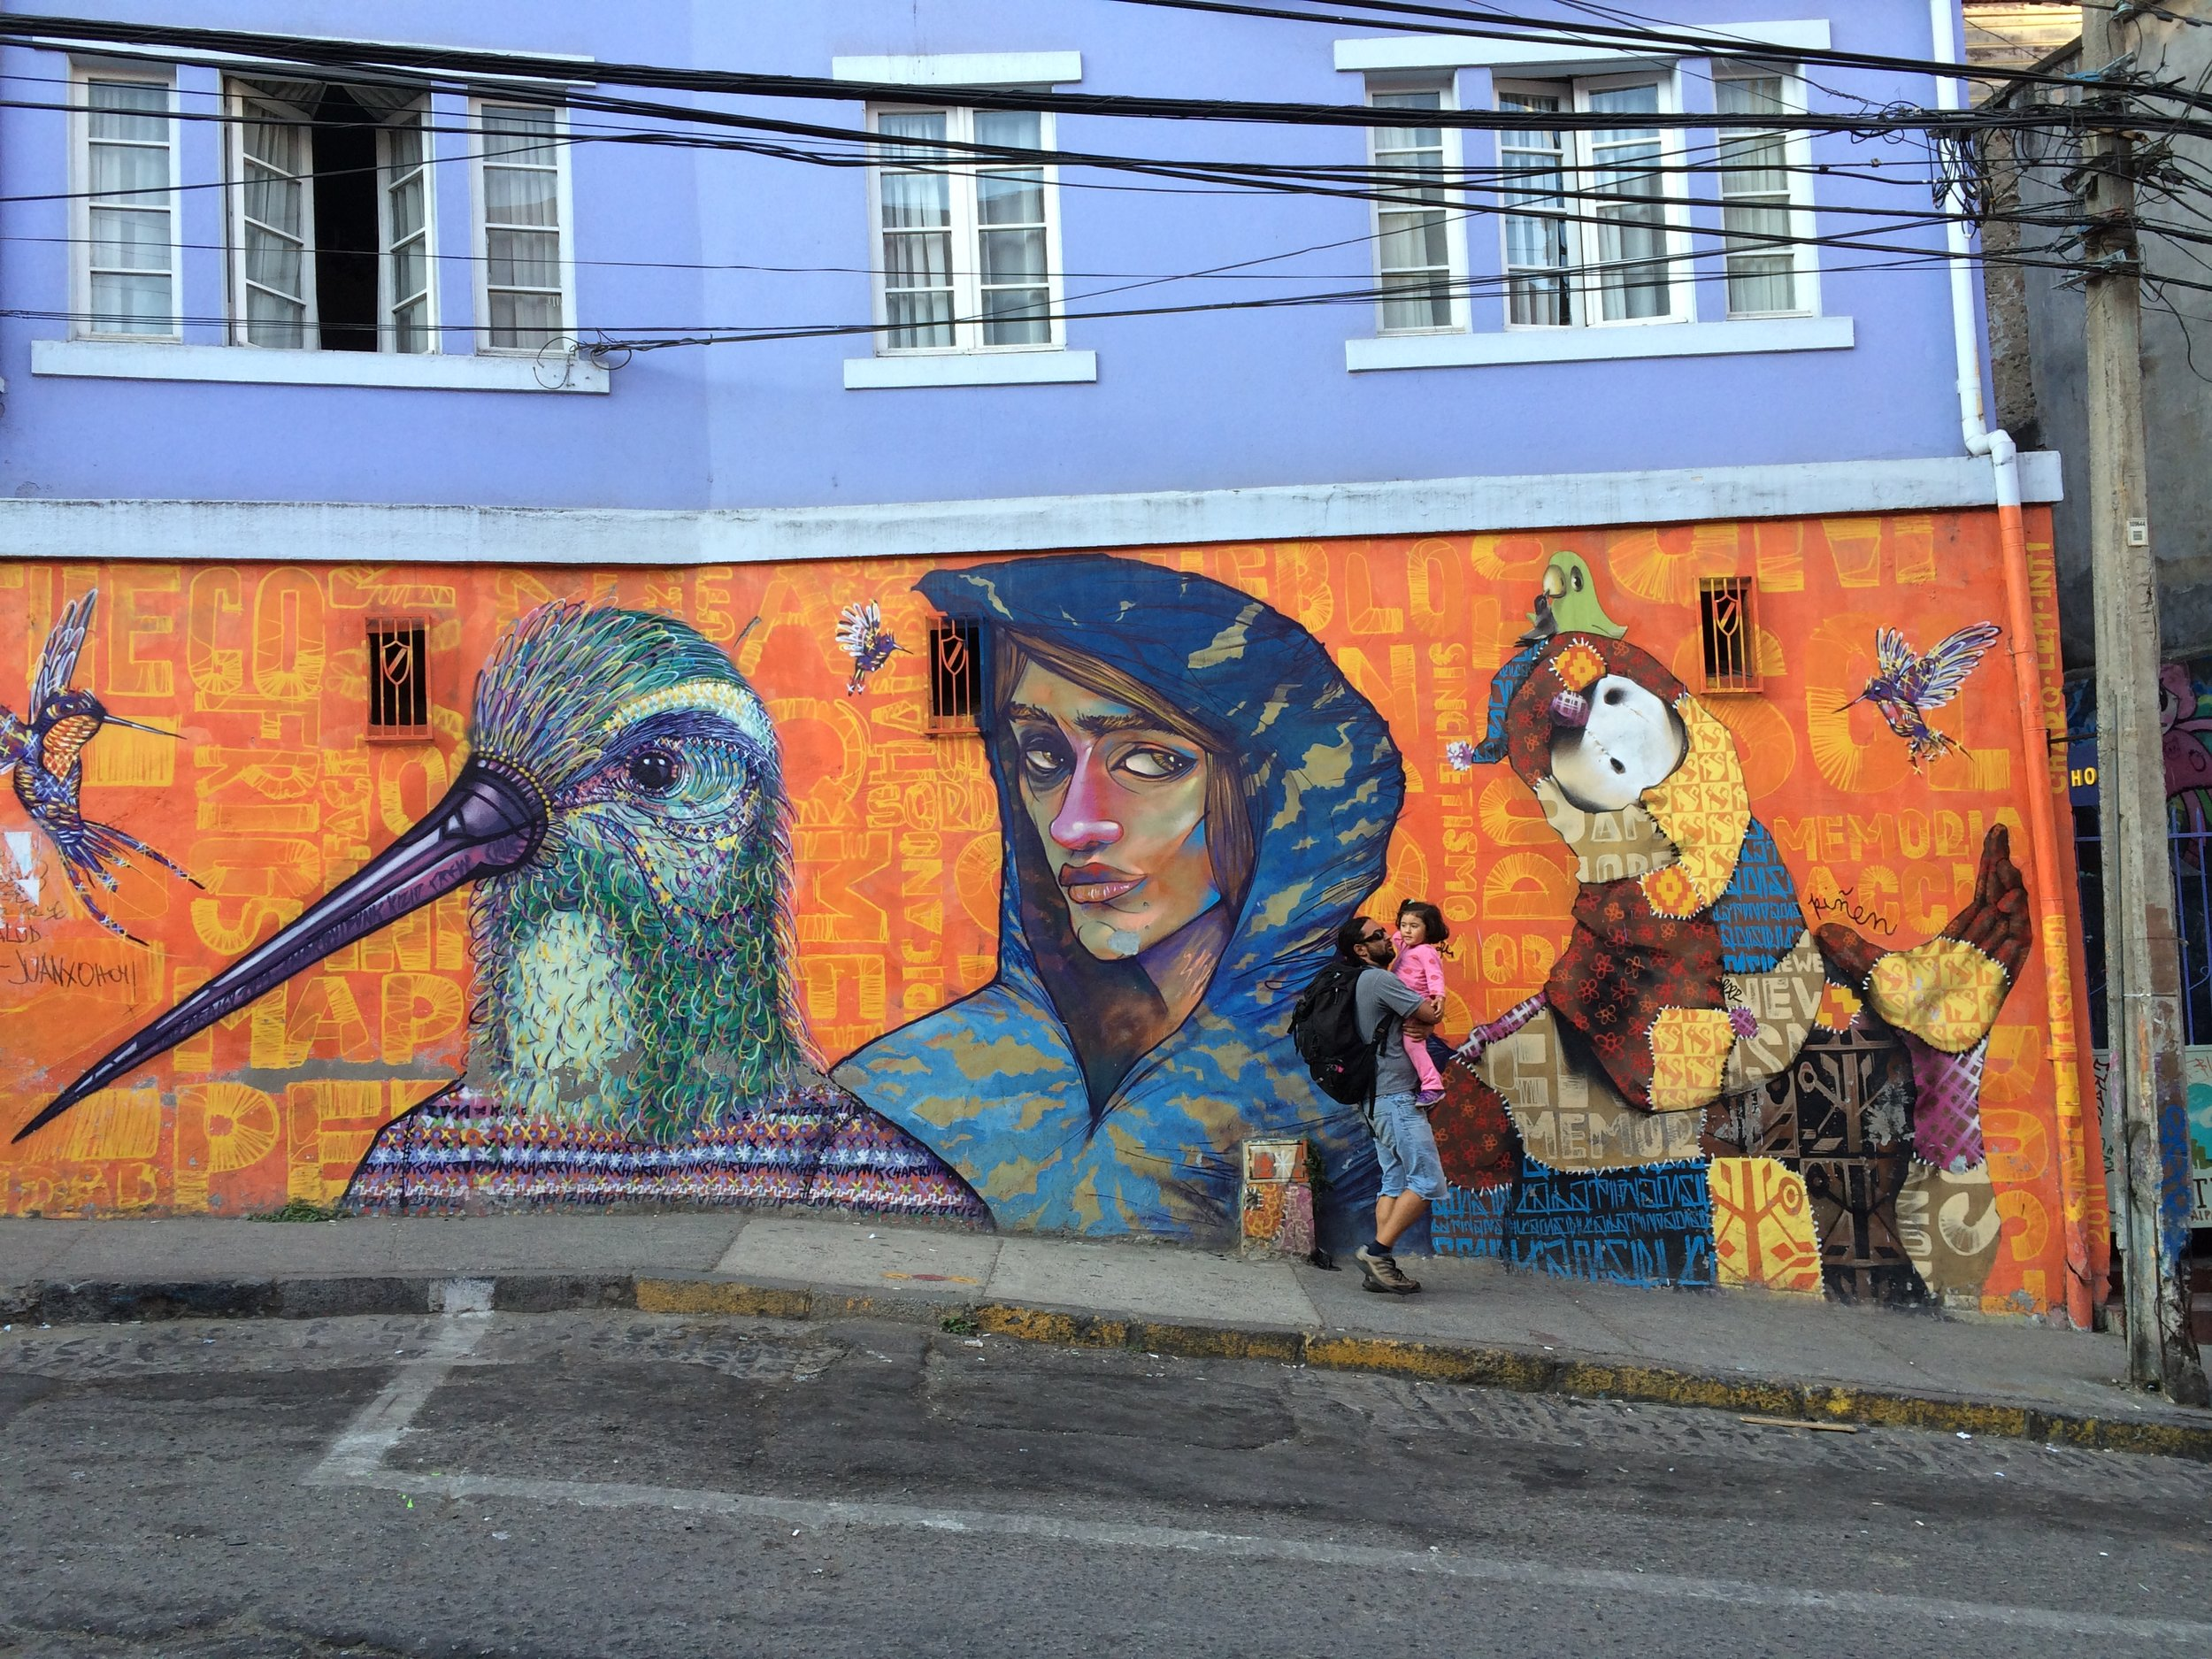 valparaiso-chile-street-art-graffiti-3.JPG